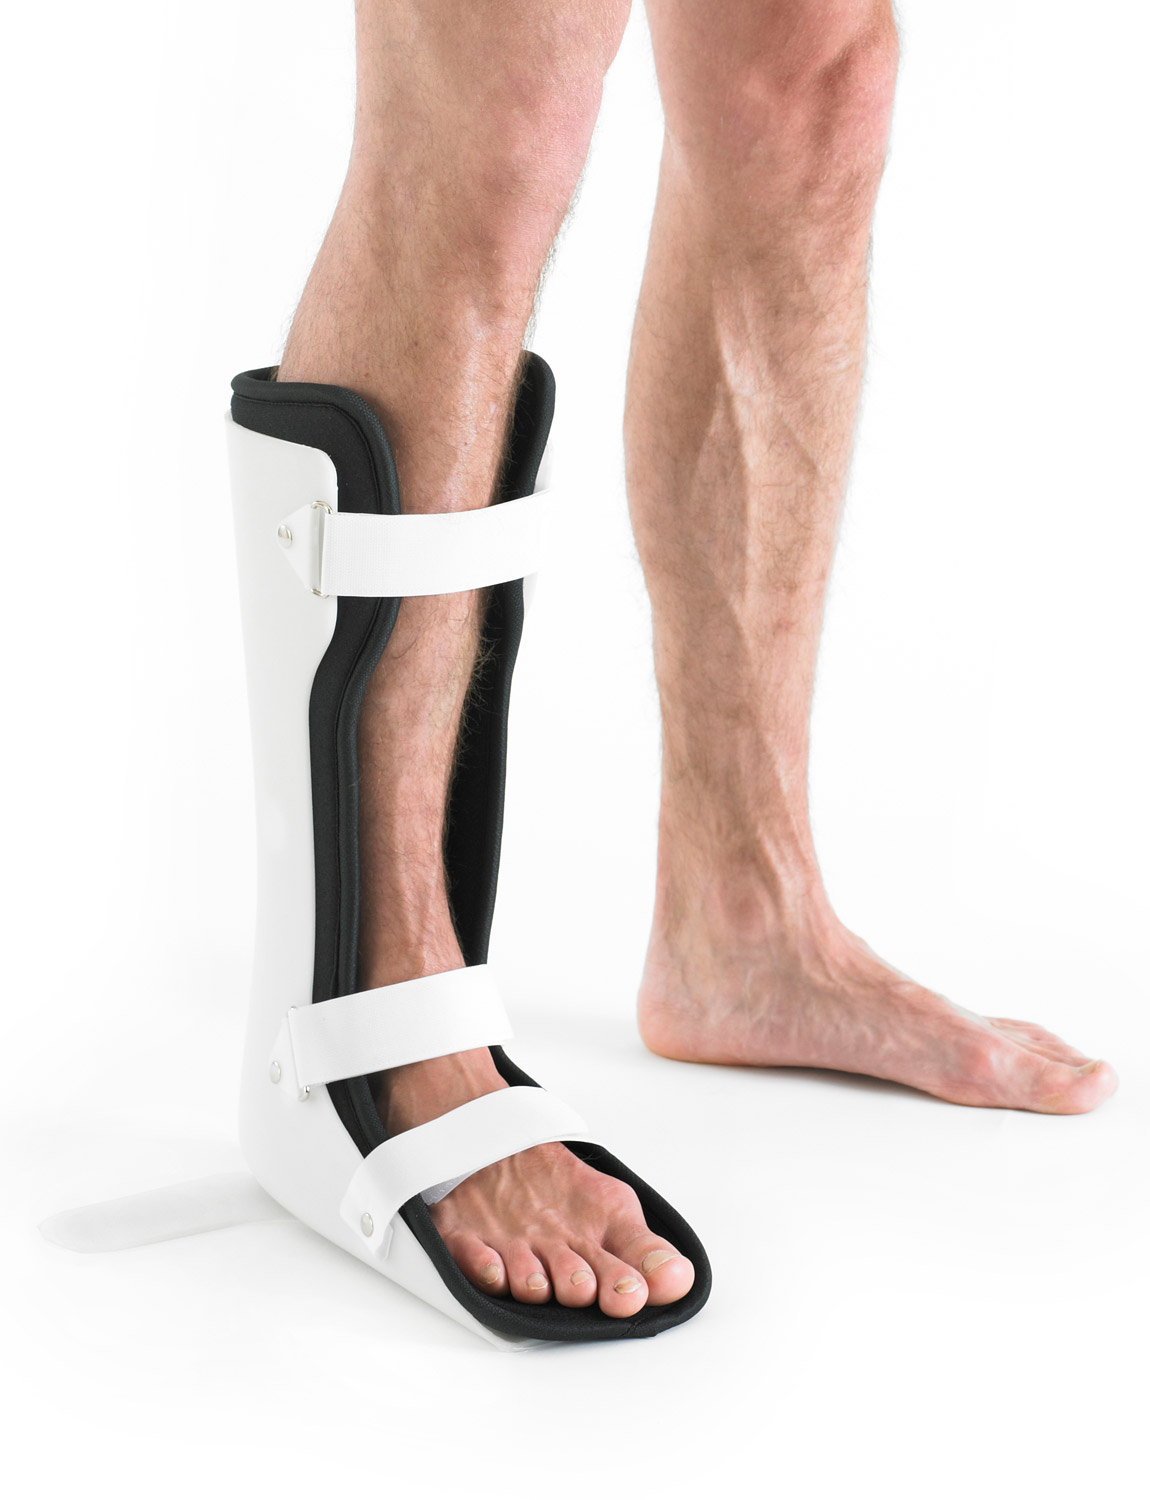 864 - ANTI-ROTATION AFO FOOTGUARD  The Neo G Anti Rotation AFO Footguard is designed to help position the foot in the correct anatomical alignment. It helps to correct excessive external and internal rotation and over pronation and supination at the ankle joint.